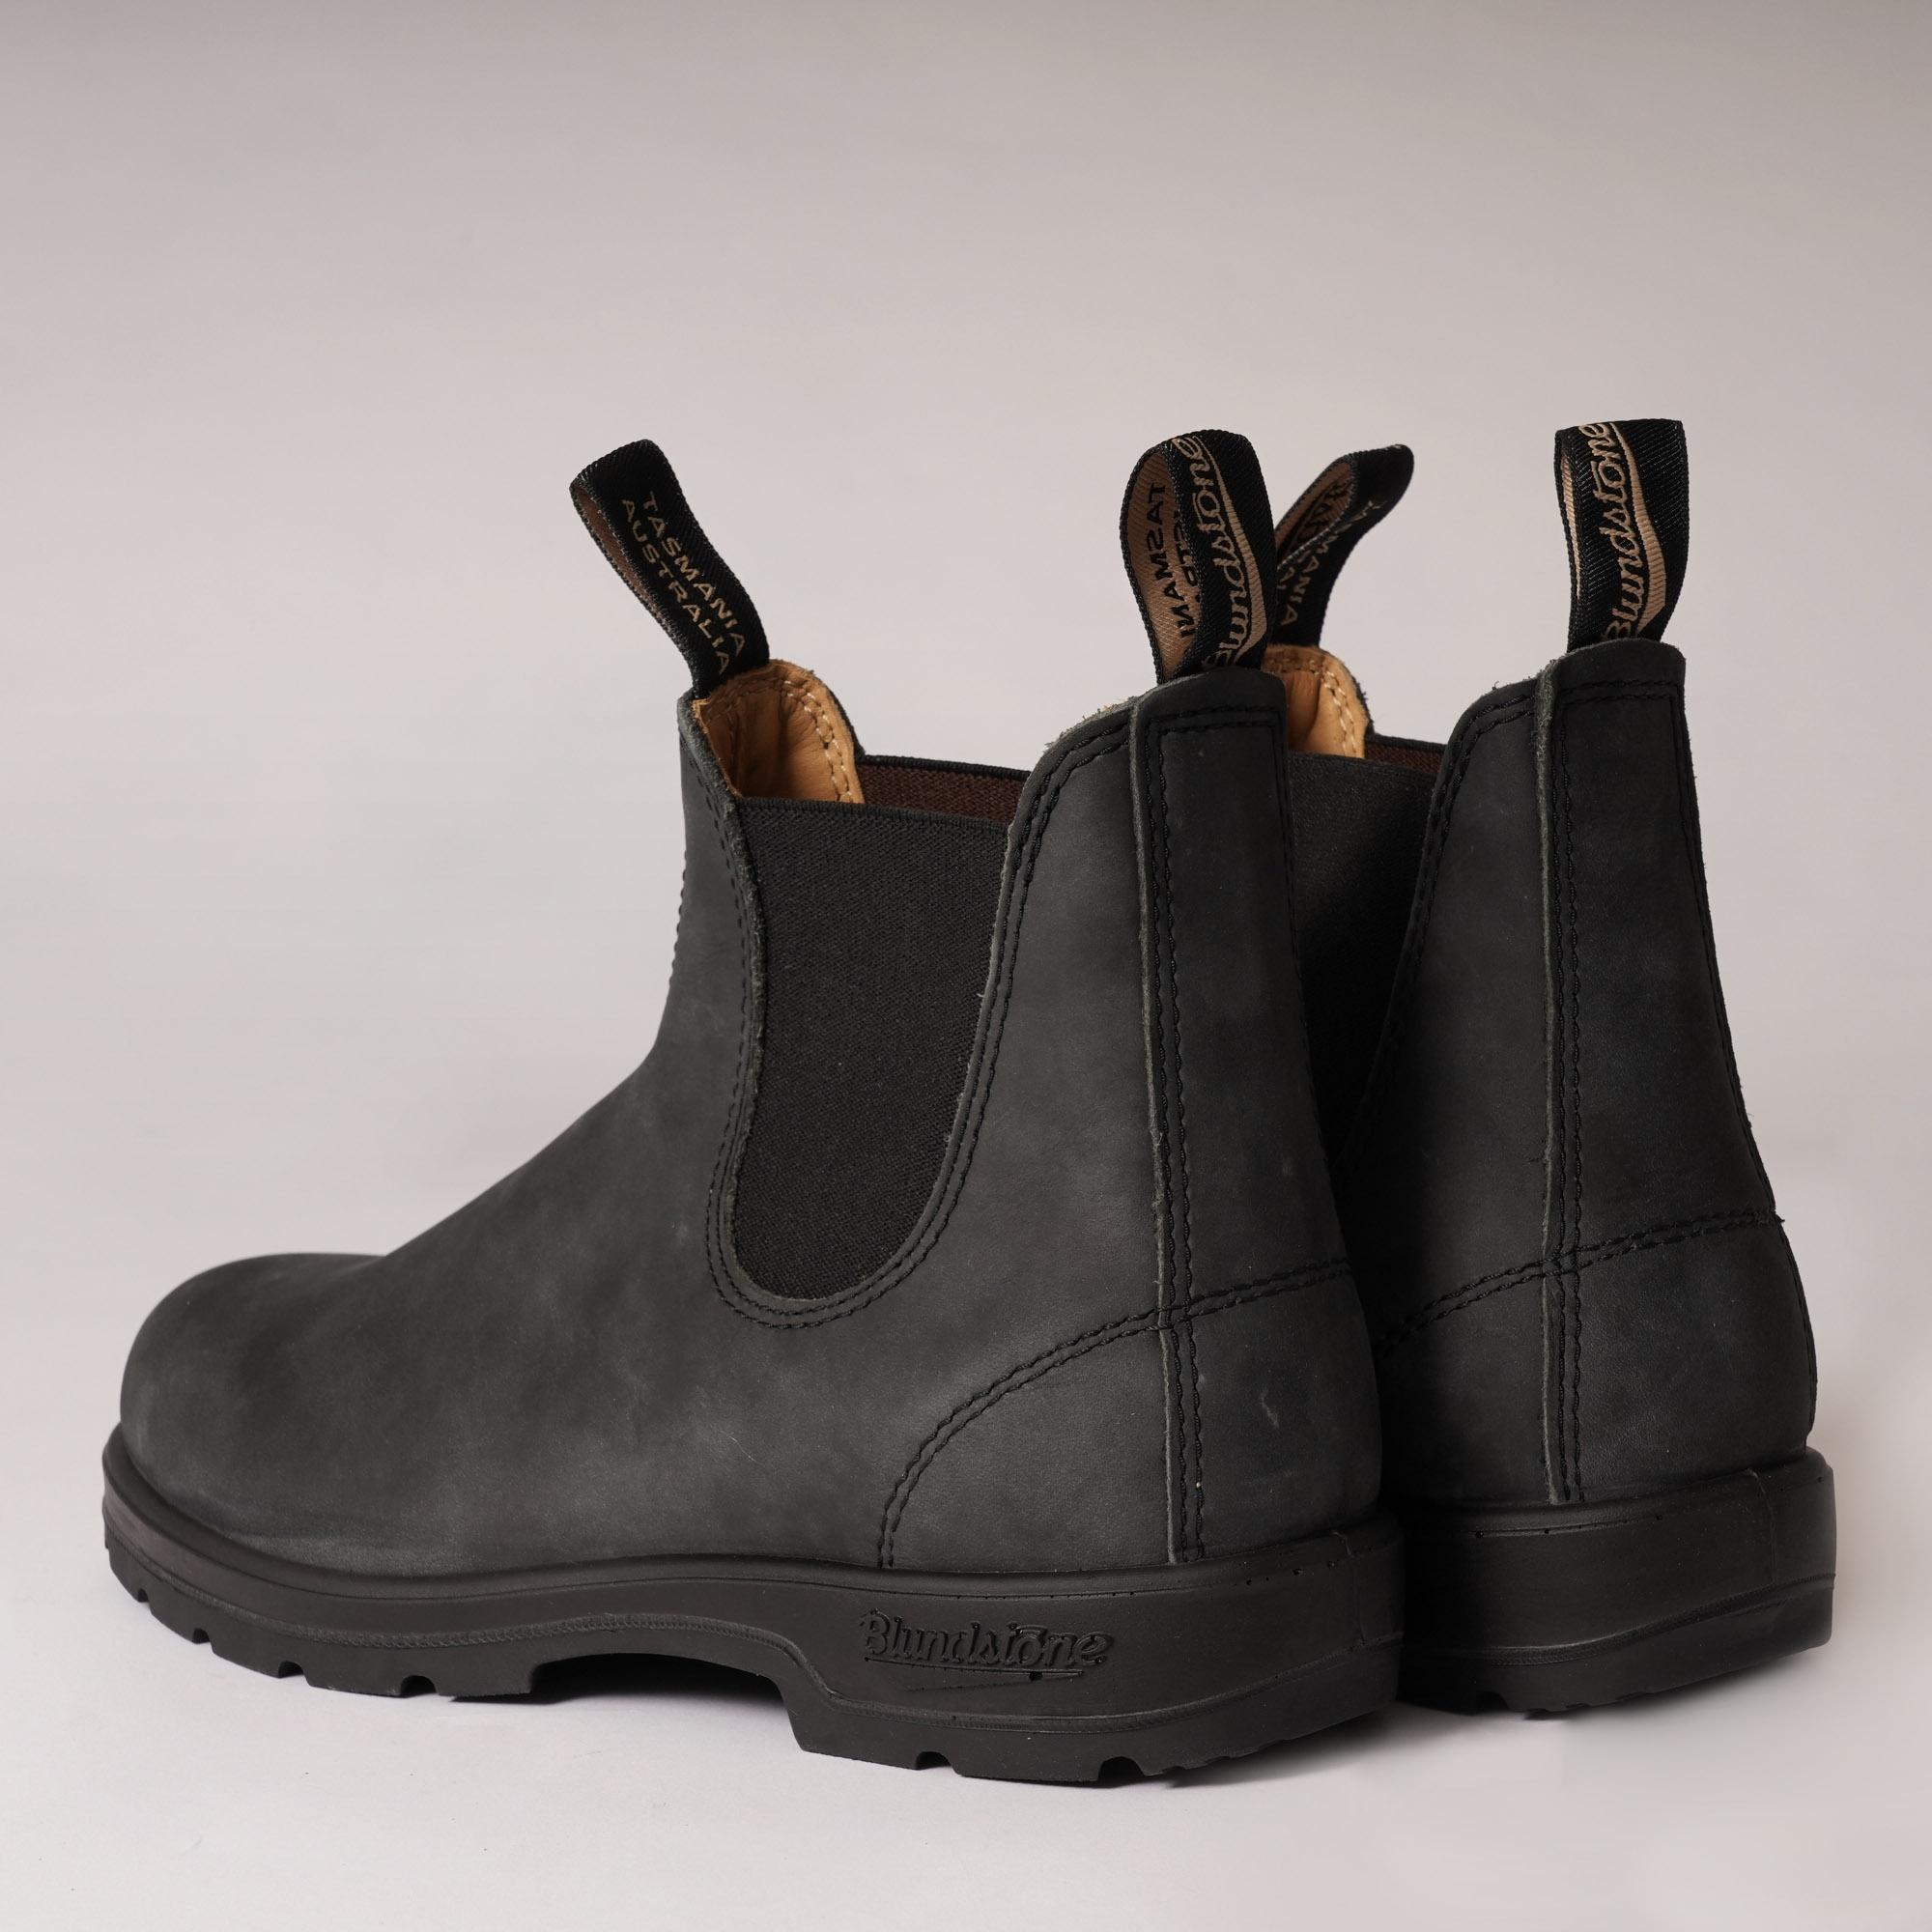 31312b2c8dc4 Blundstone - Black 587 Chelsea Boots for Men - Lyst. View fullscreen